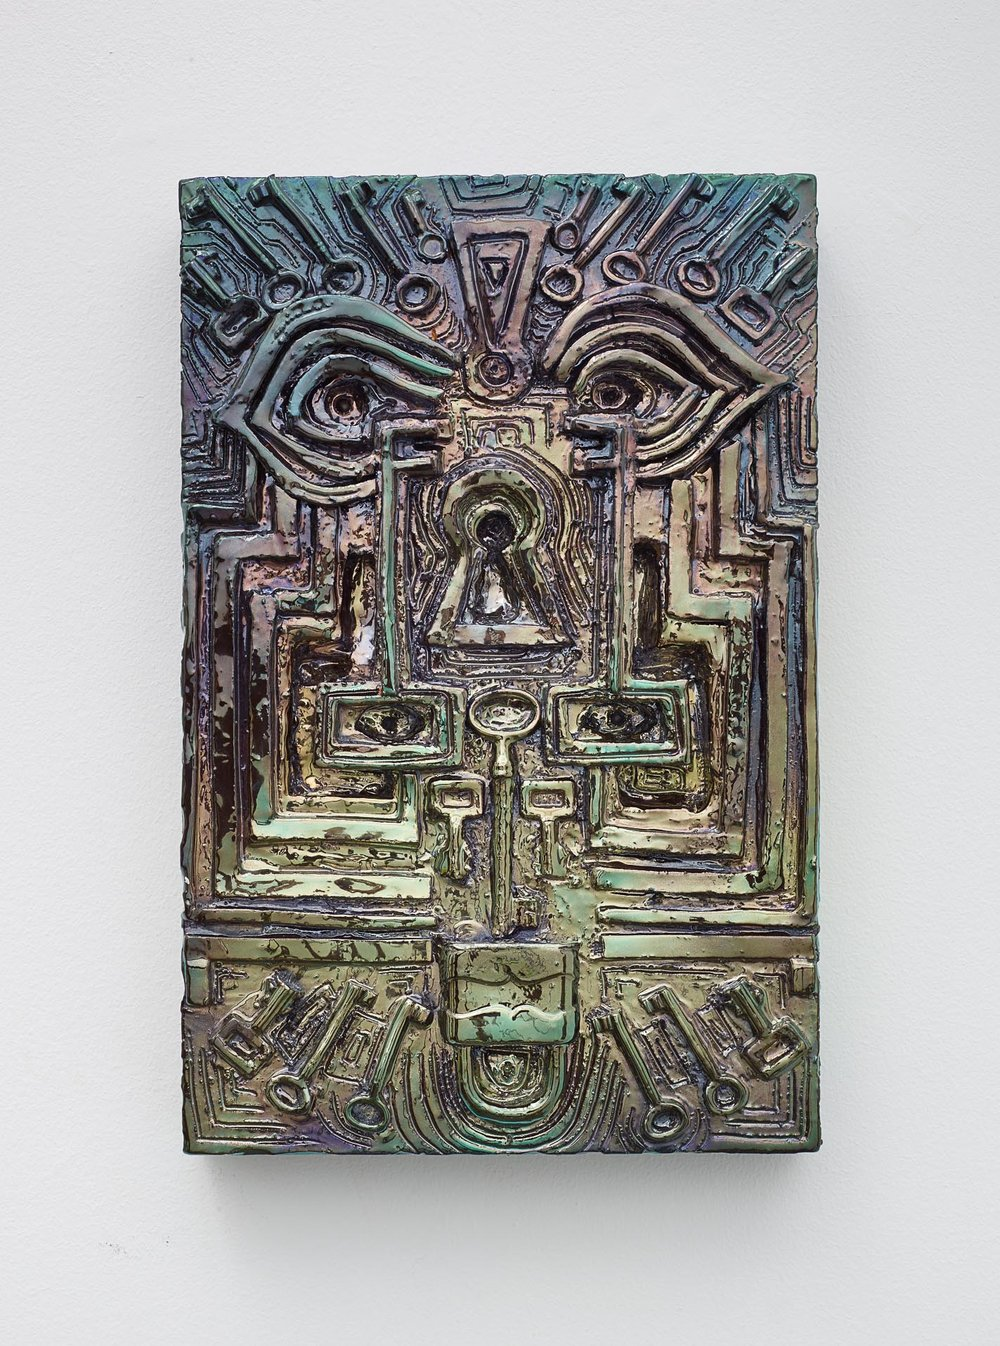 Julia Kunin,   Keys,  2015, Ceramic, 14 1/2 x 9 1/2 x 2 1/2 inches